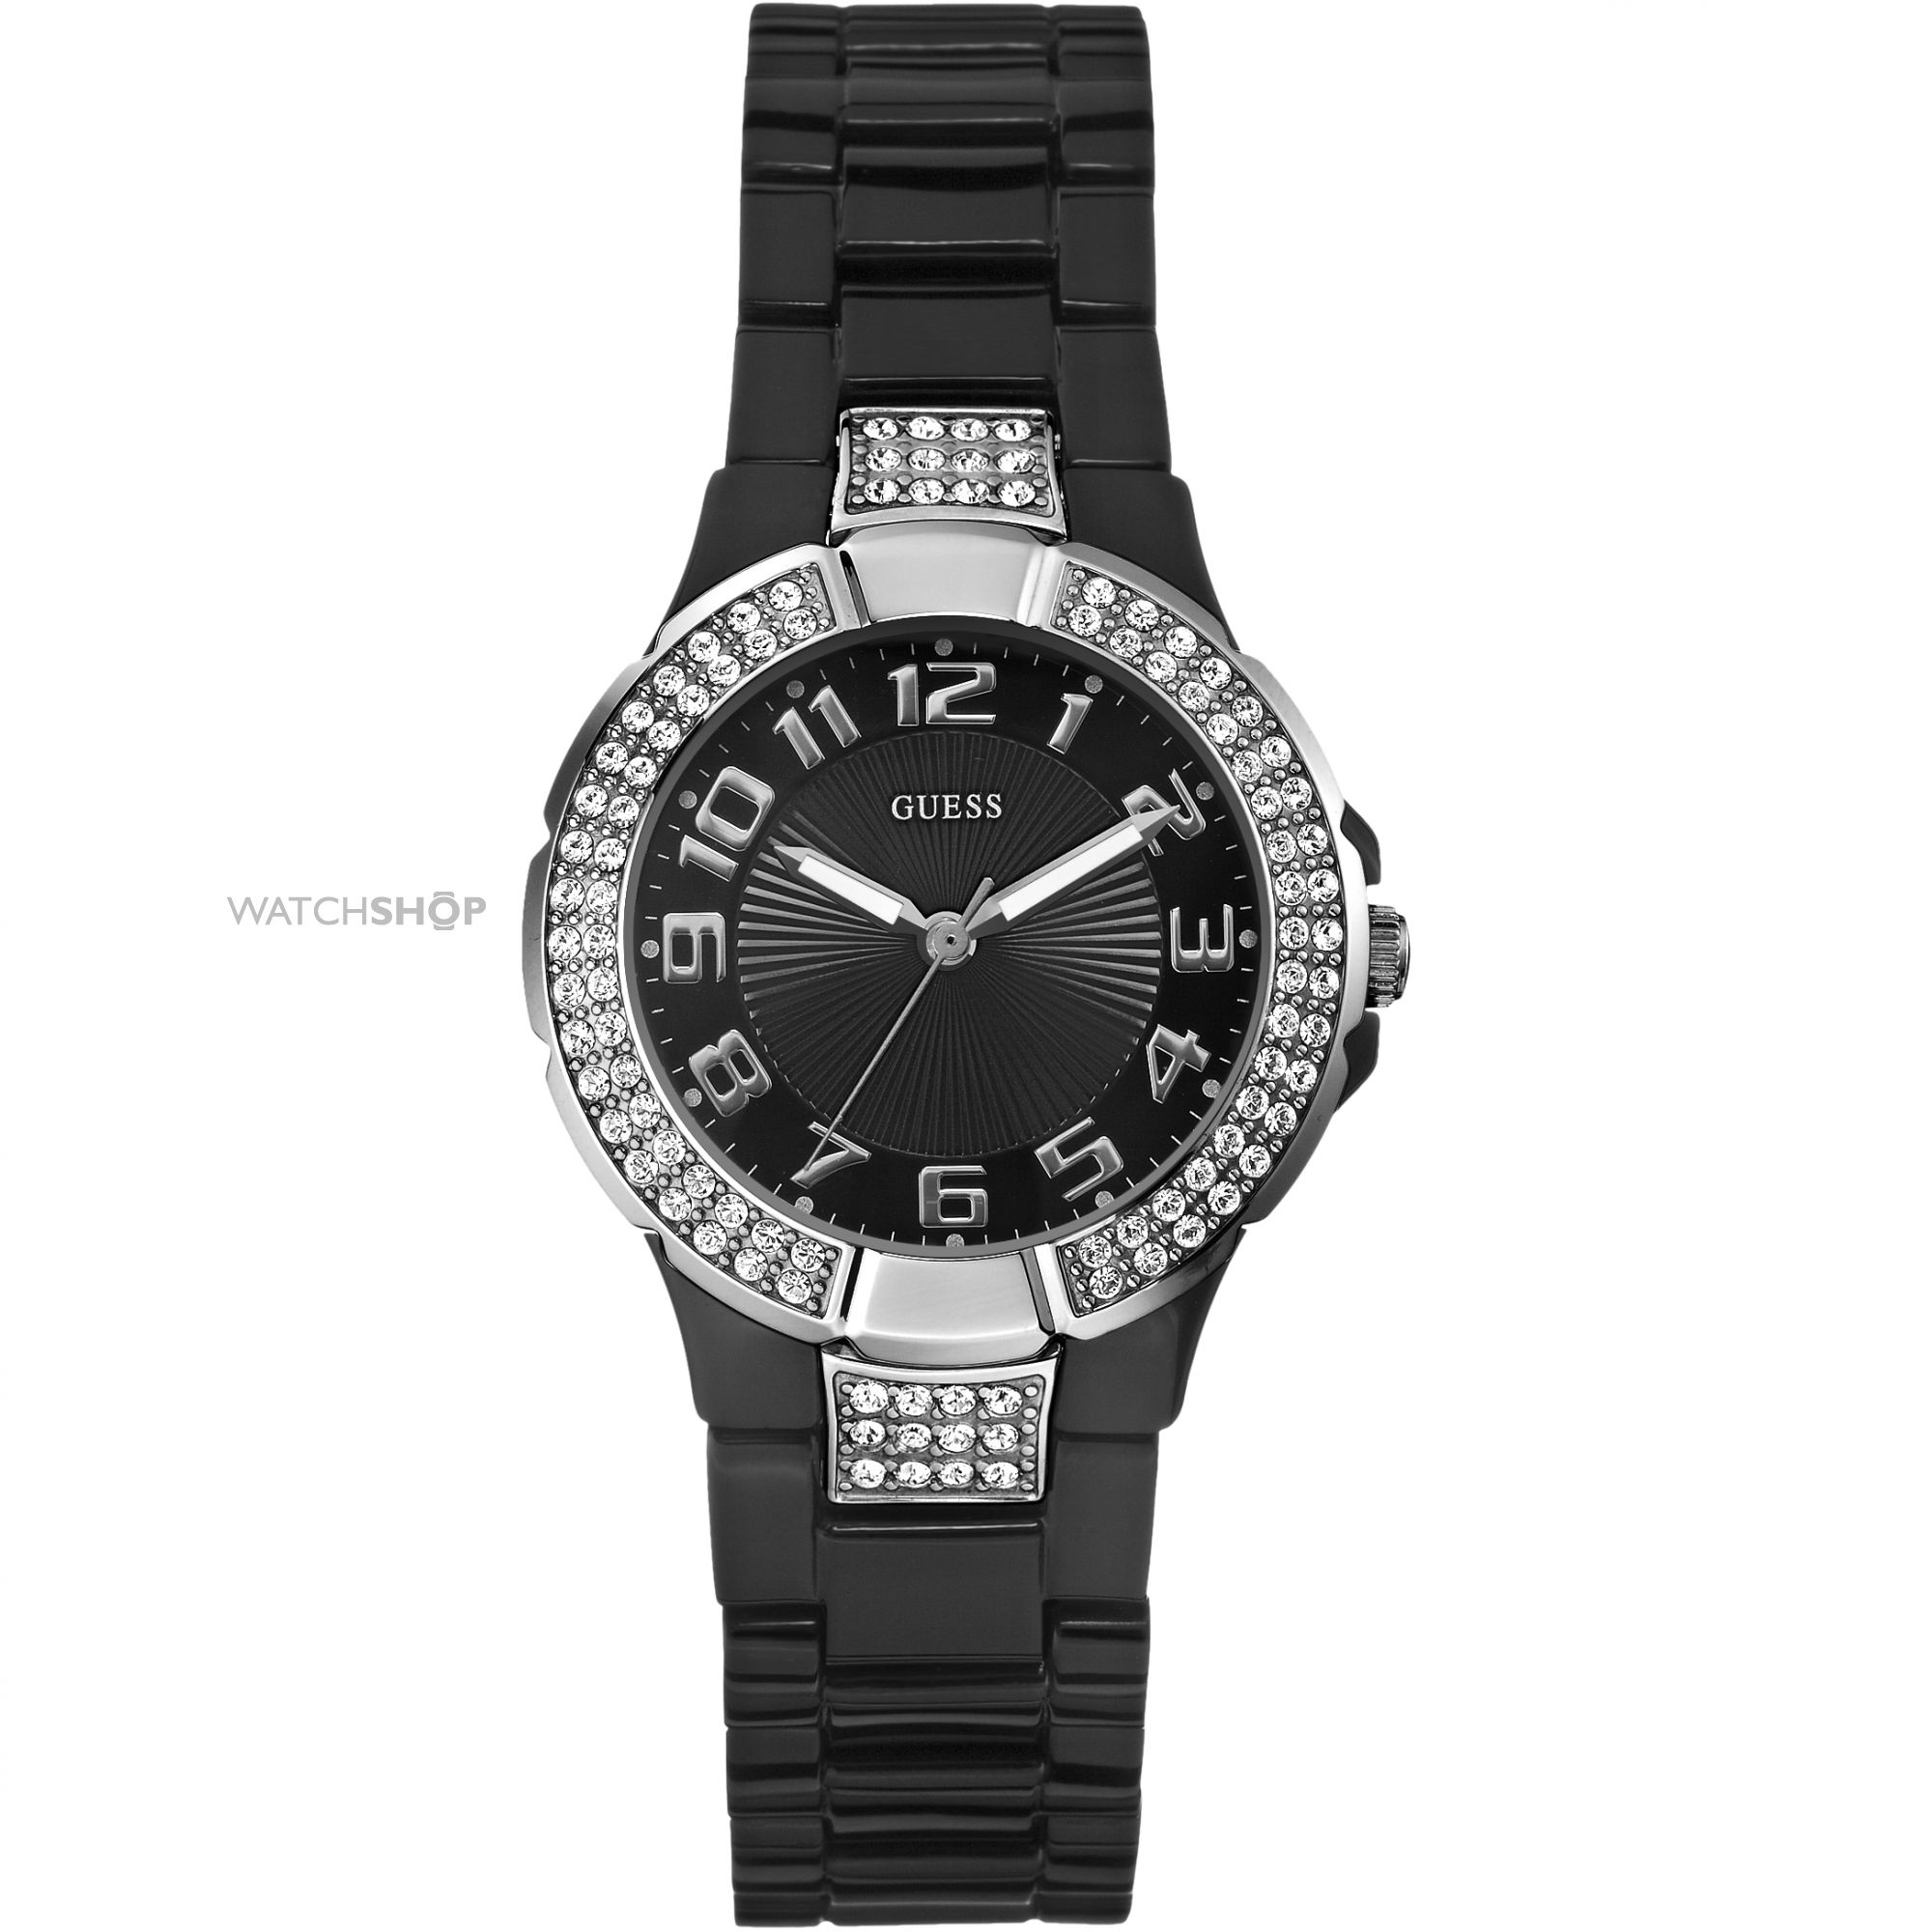 Ladies' Guess Mini Prism Watch (w11611l2)  Watch Shopm™. Embroidered Brooch. Blue Crystal Pendant. 1000 Dollar Engagement Rings. Hipster Watches. Original Engagement Rings. Diamond Engagement. Aqua Marine Gemstone. African Sapphire